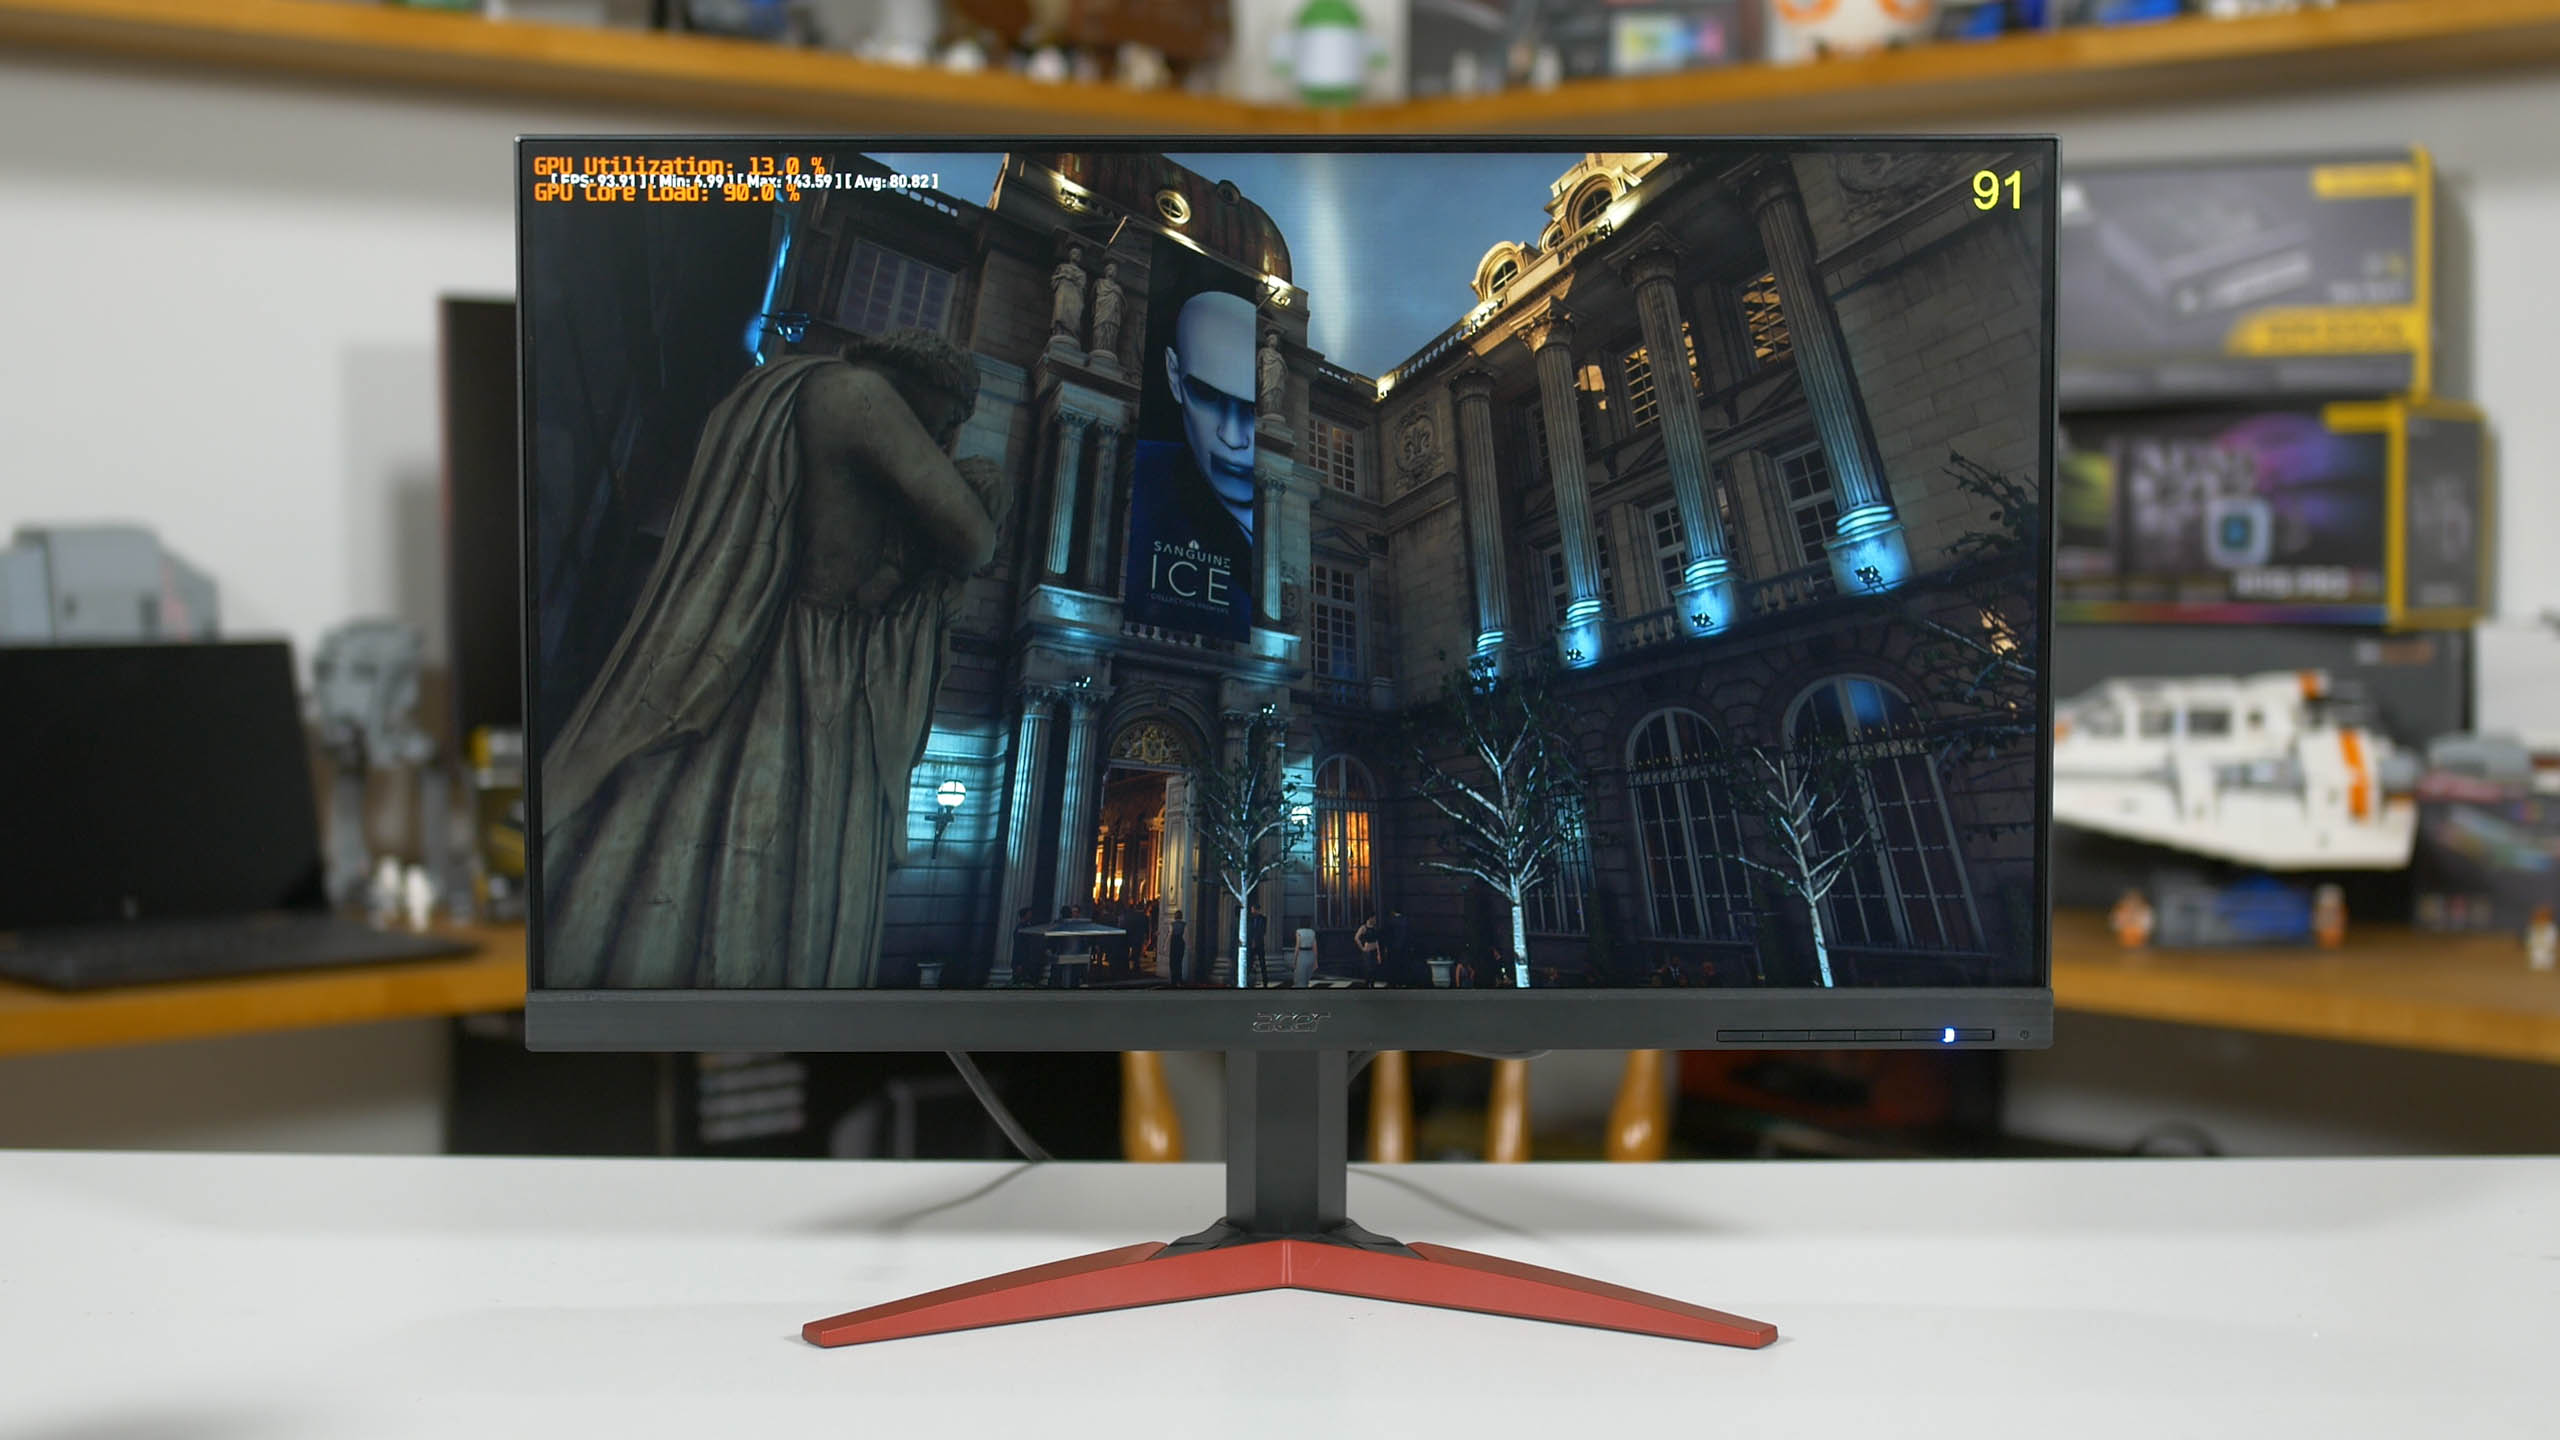 FreeSync on Nvidia GPUs Workaround: Impractical, But It Works - TechSpot